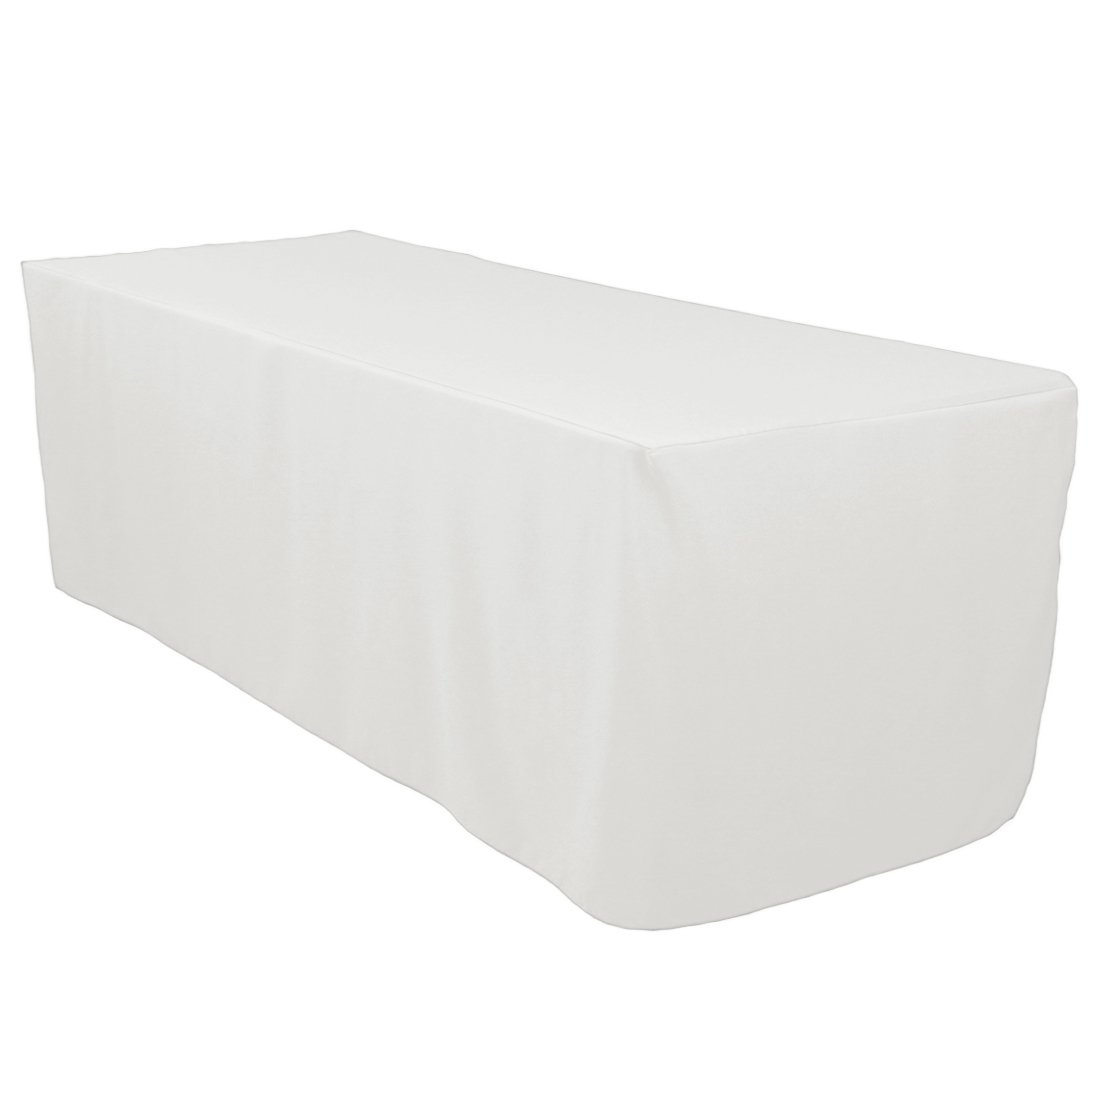 LinenTablecloth 8 ft Fitted Polyester Tablecloth White